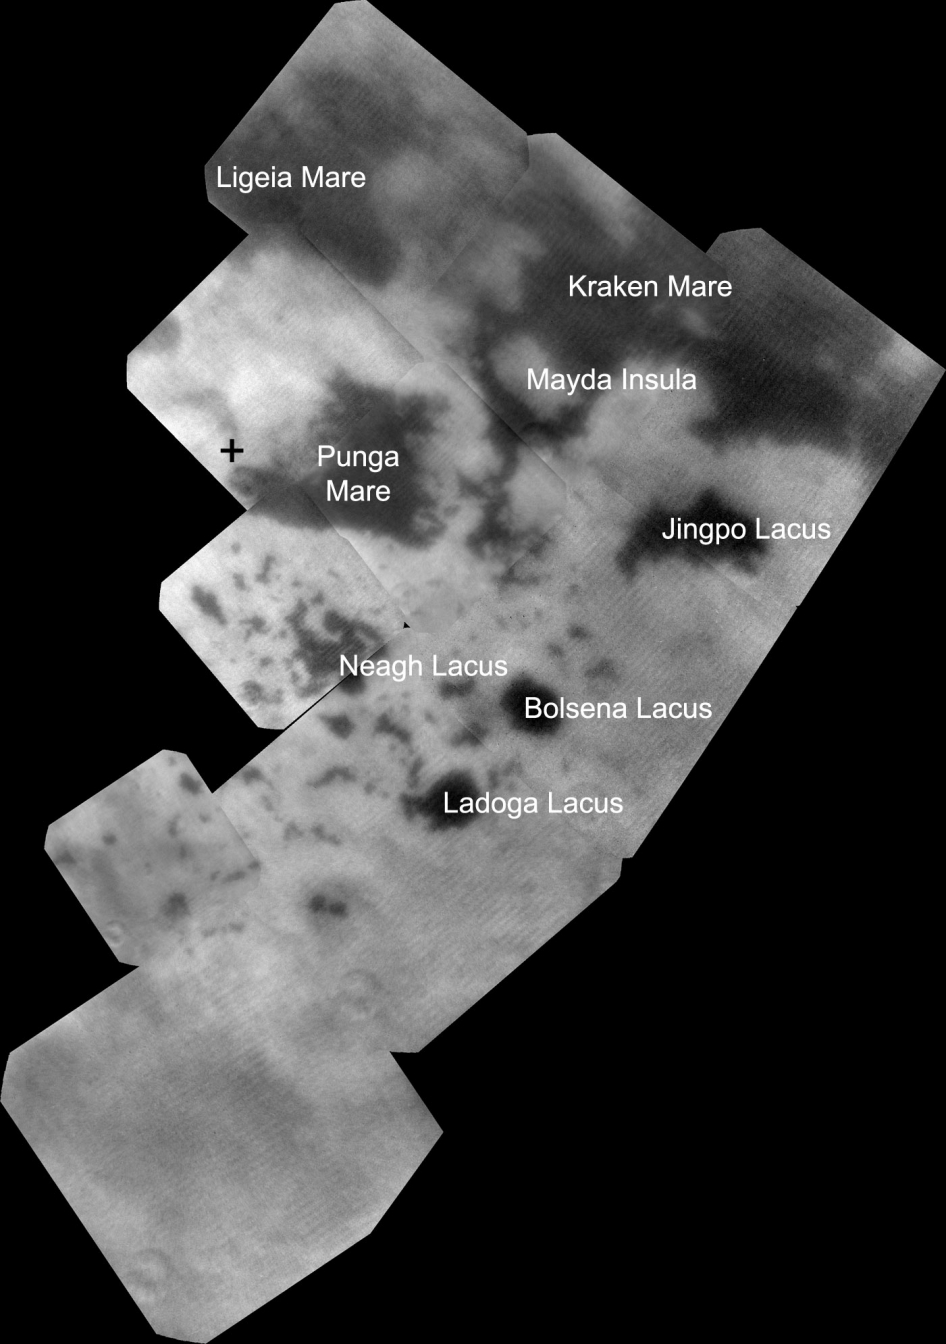 Hydrocarbon seas and lakes (dark shapes) near the north pole of Saturn's moon Titan